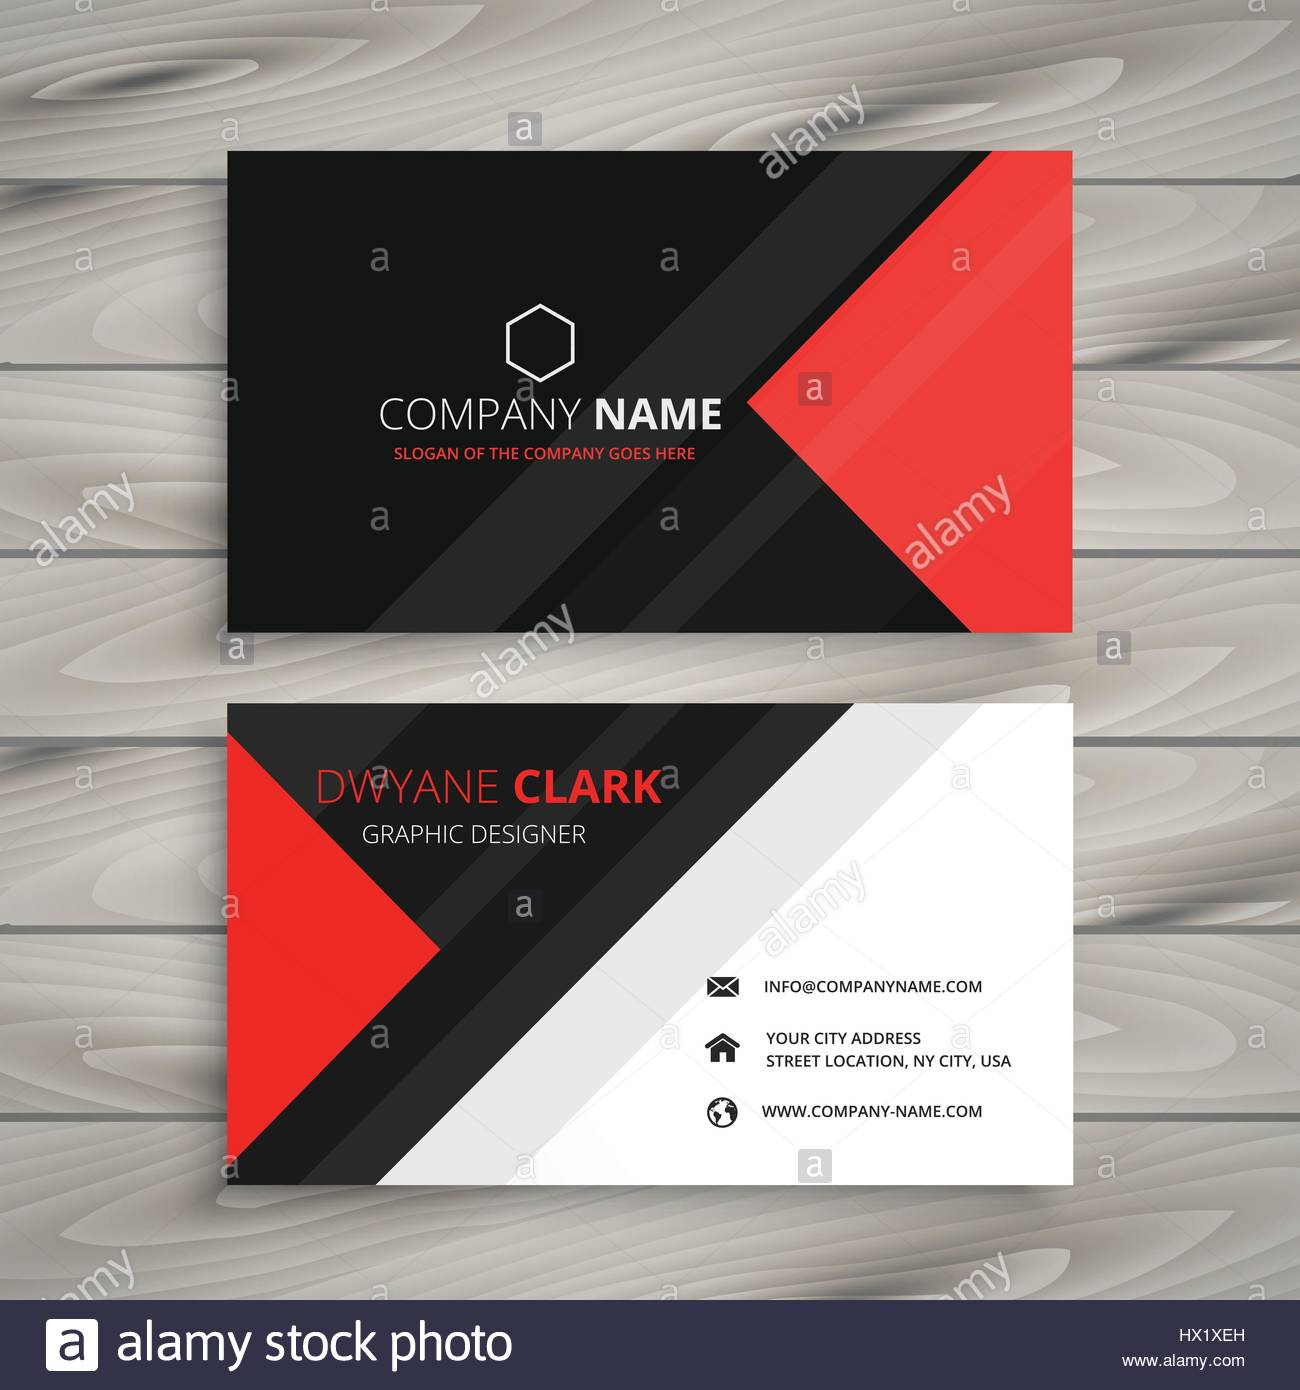 Red black corporate business card template vector design red black corporate business card template vector design illustration friedricerecipe Gallery